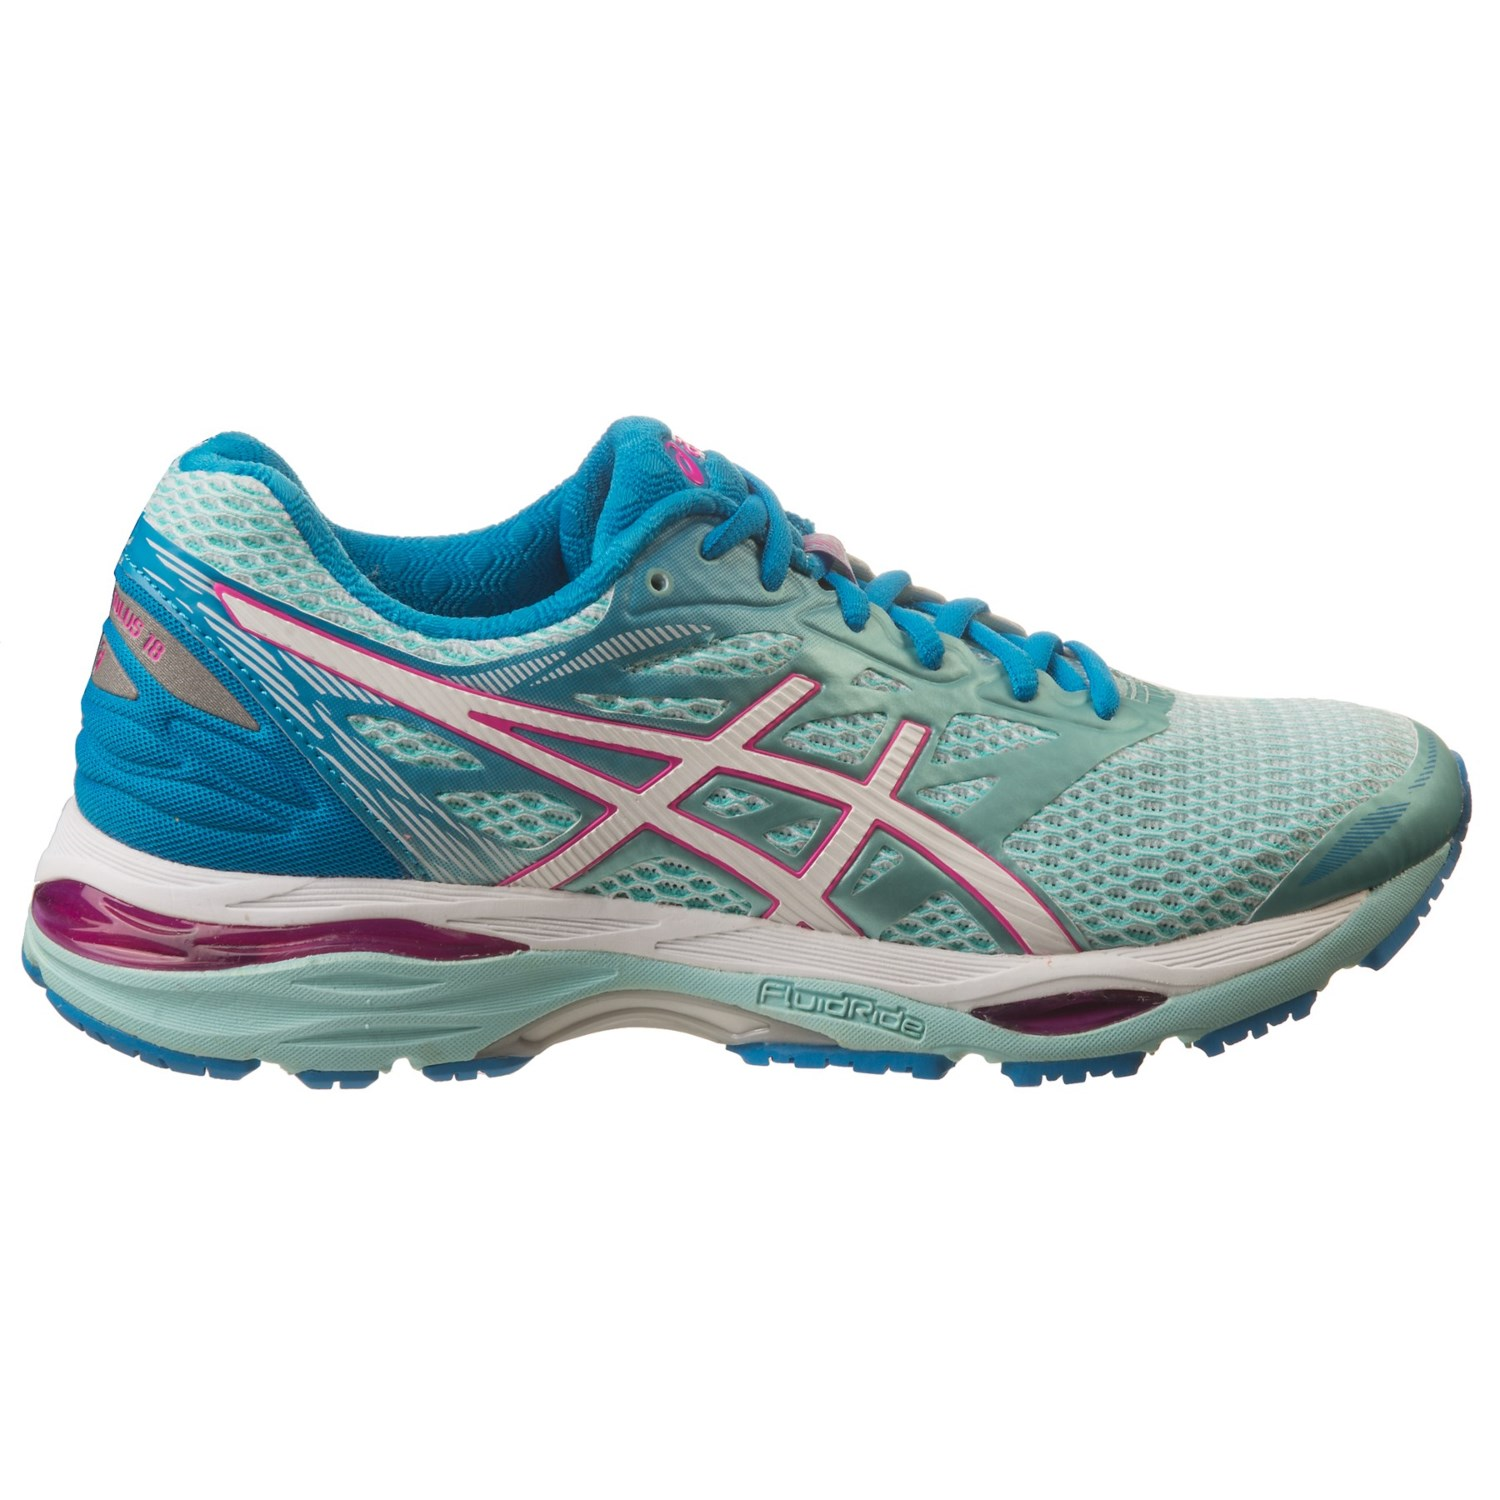 Asics Road Running Shoes Reviews